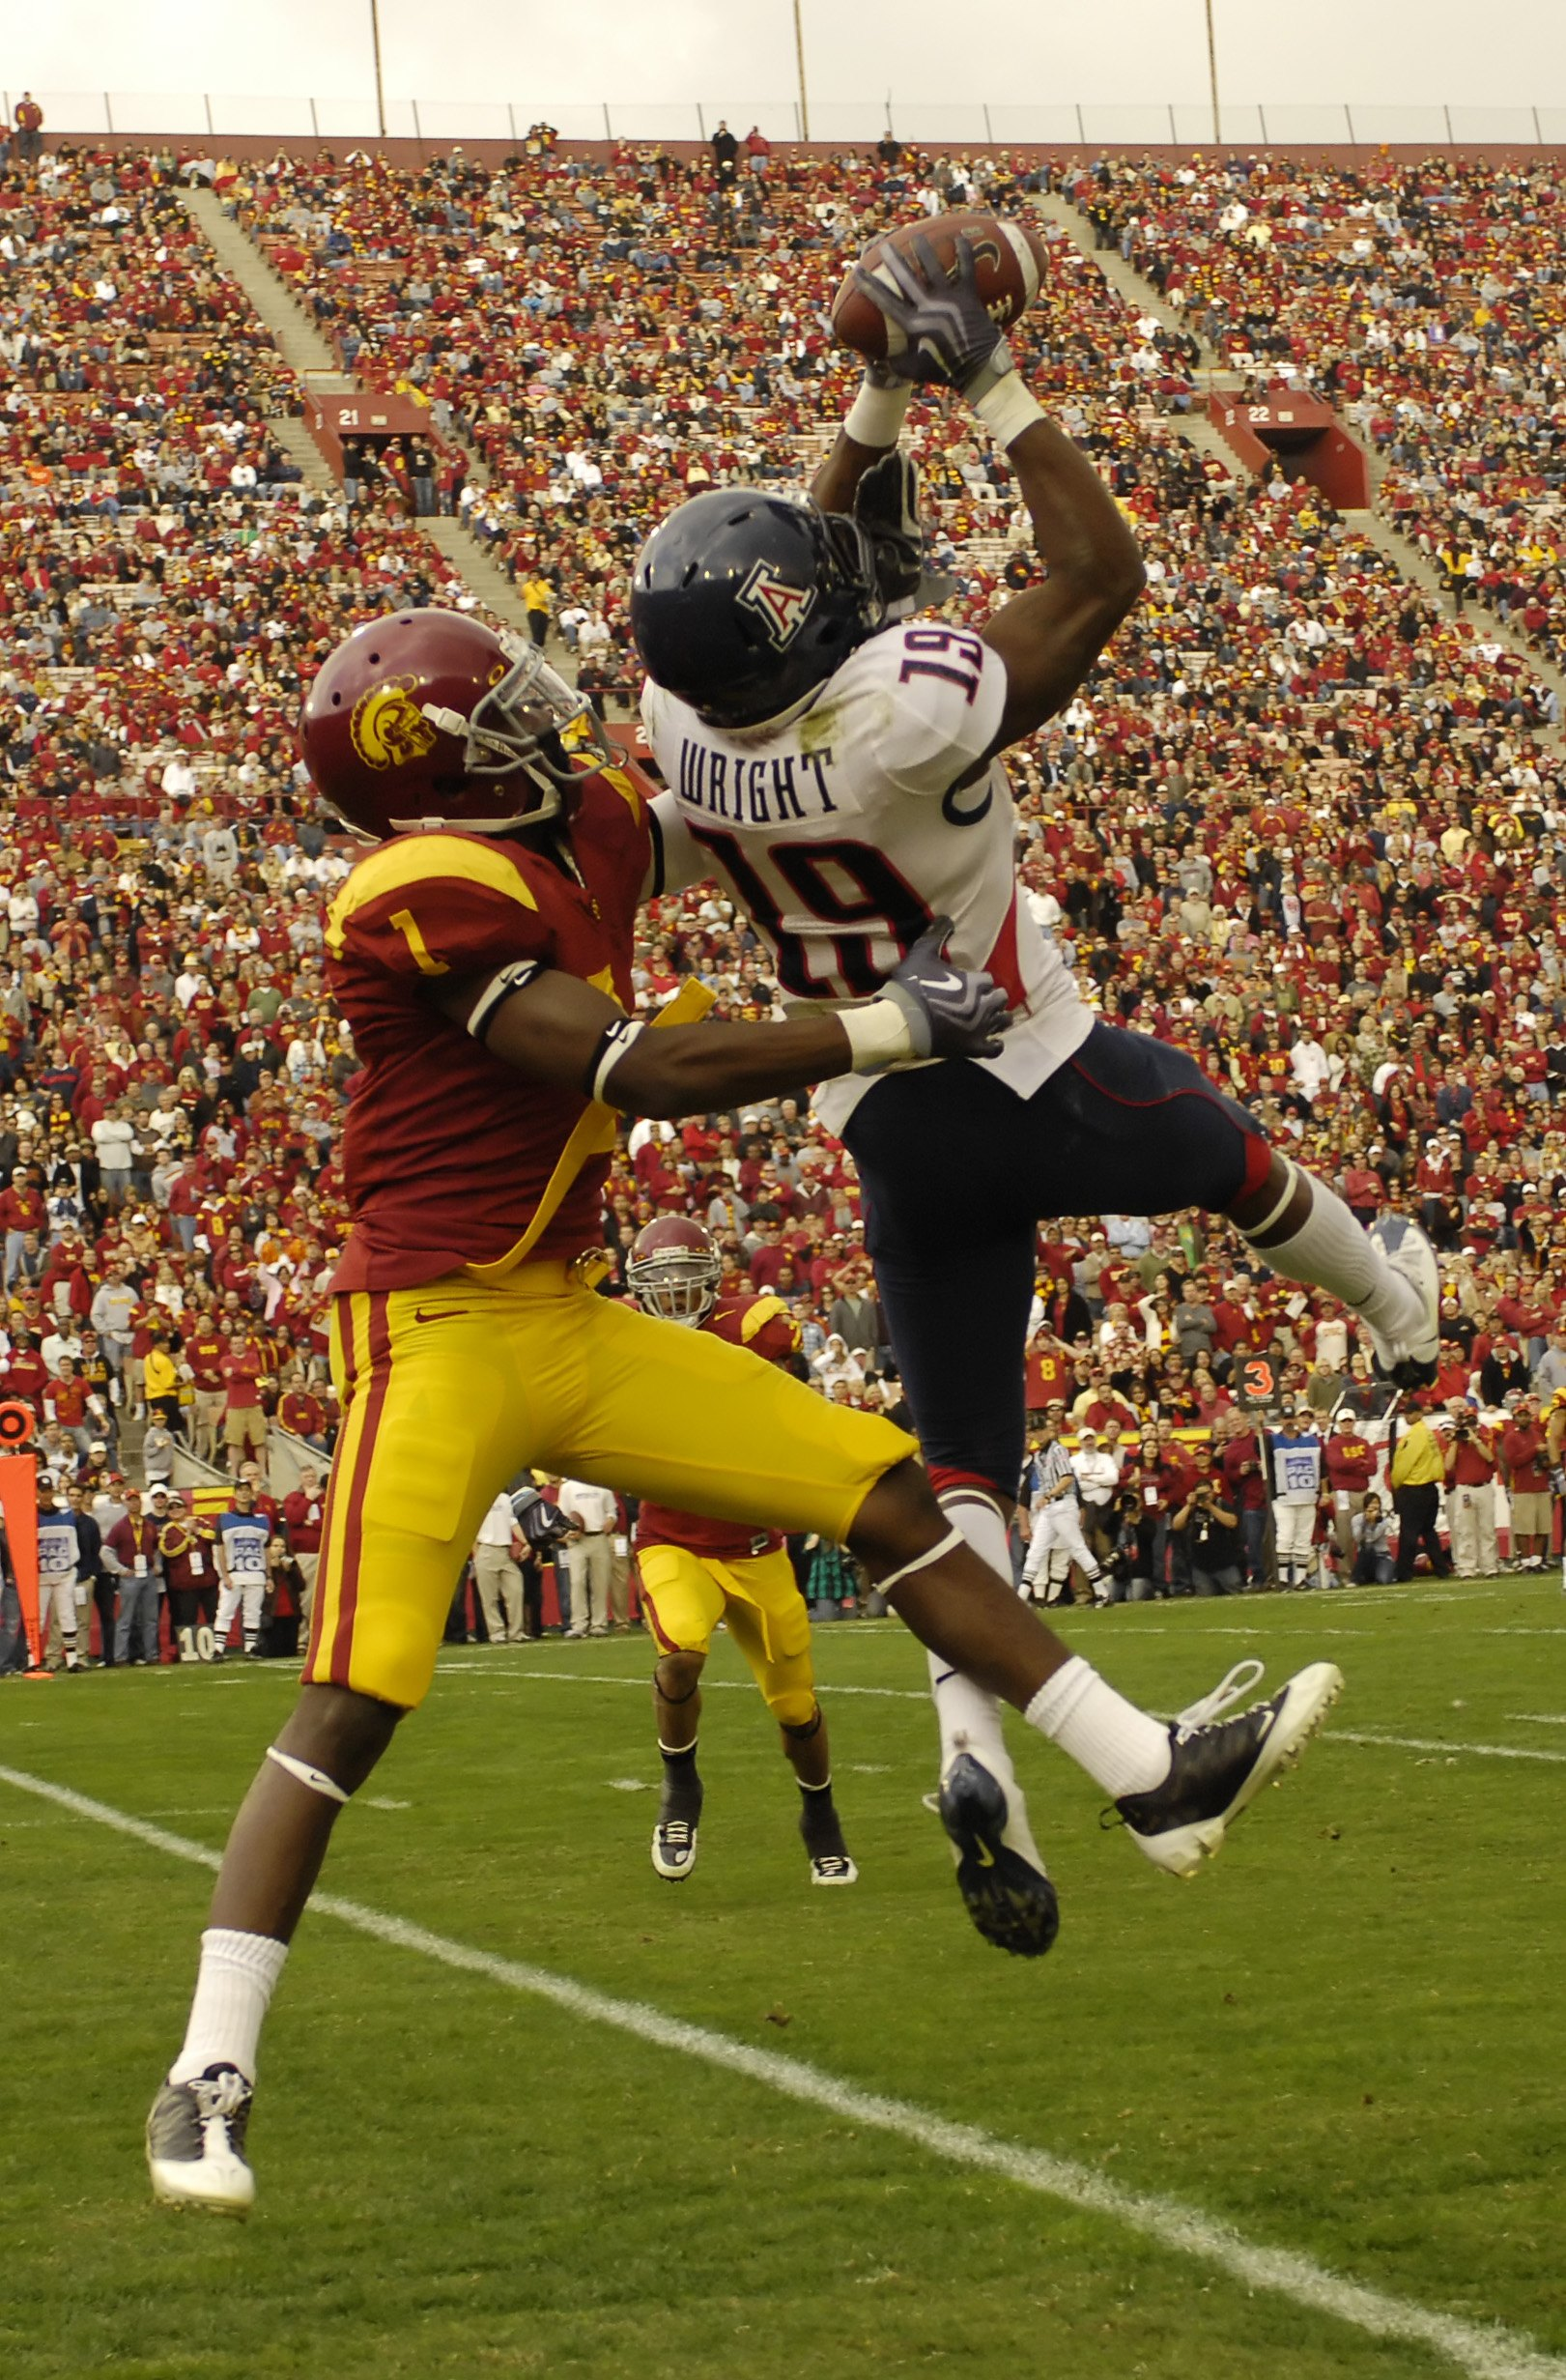 LOS ANGELES, CA - DECEMBER 05: Wide receiver William Wright #19 of the Arizona Wildcats catches a pass for a 19-yard gain against corner back T.J. Bryant #1 of the USC Trojans on the two yard line during the second quarter of the NCAA college football gam